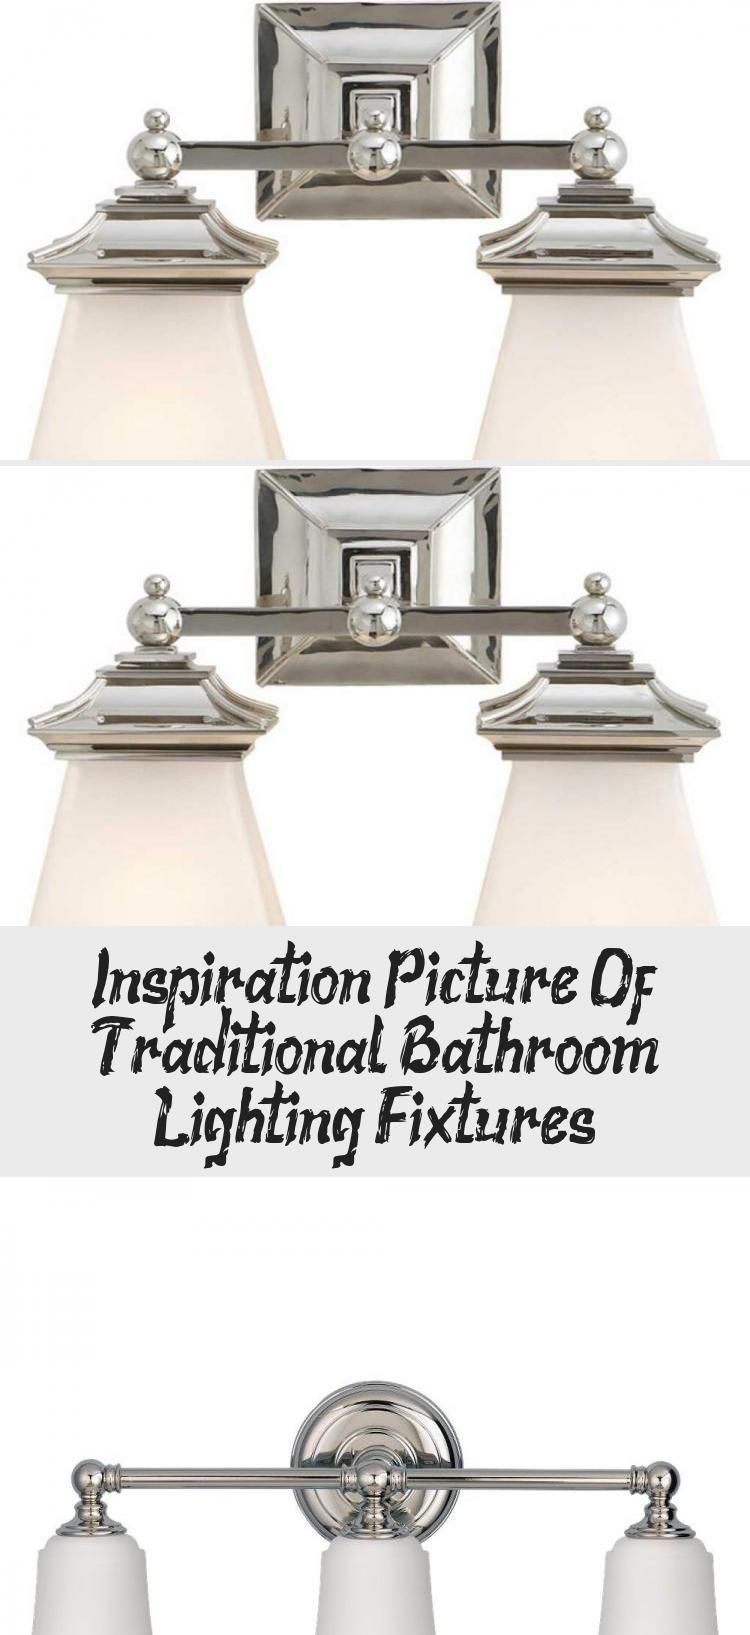 Photo of Inspirational image of traditional bathroom lighting fixtures – decoration